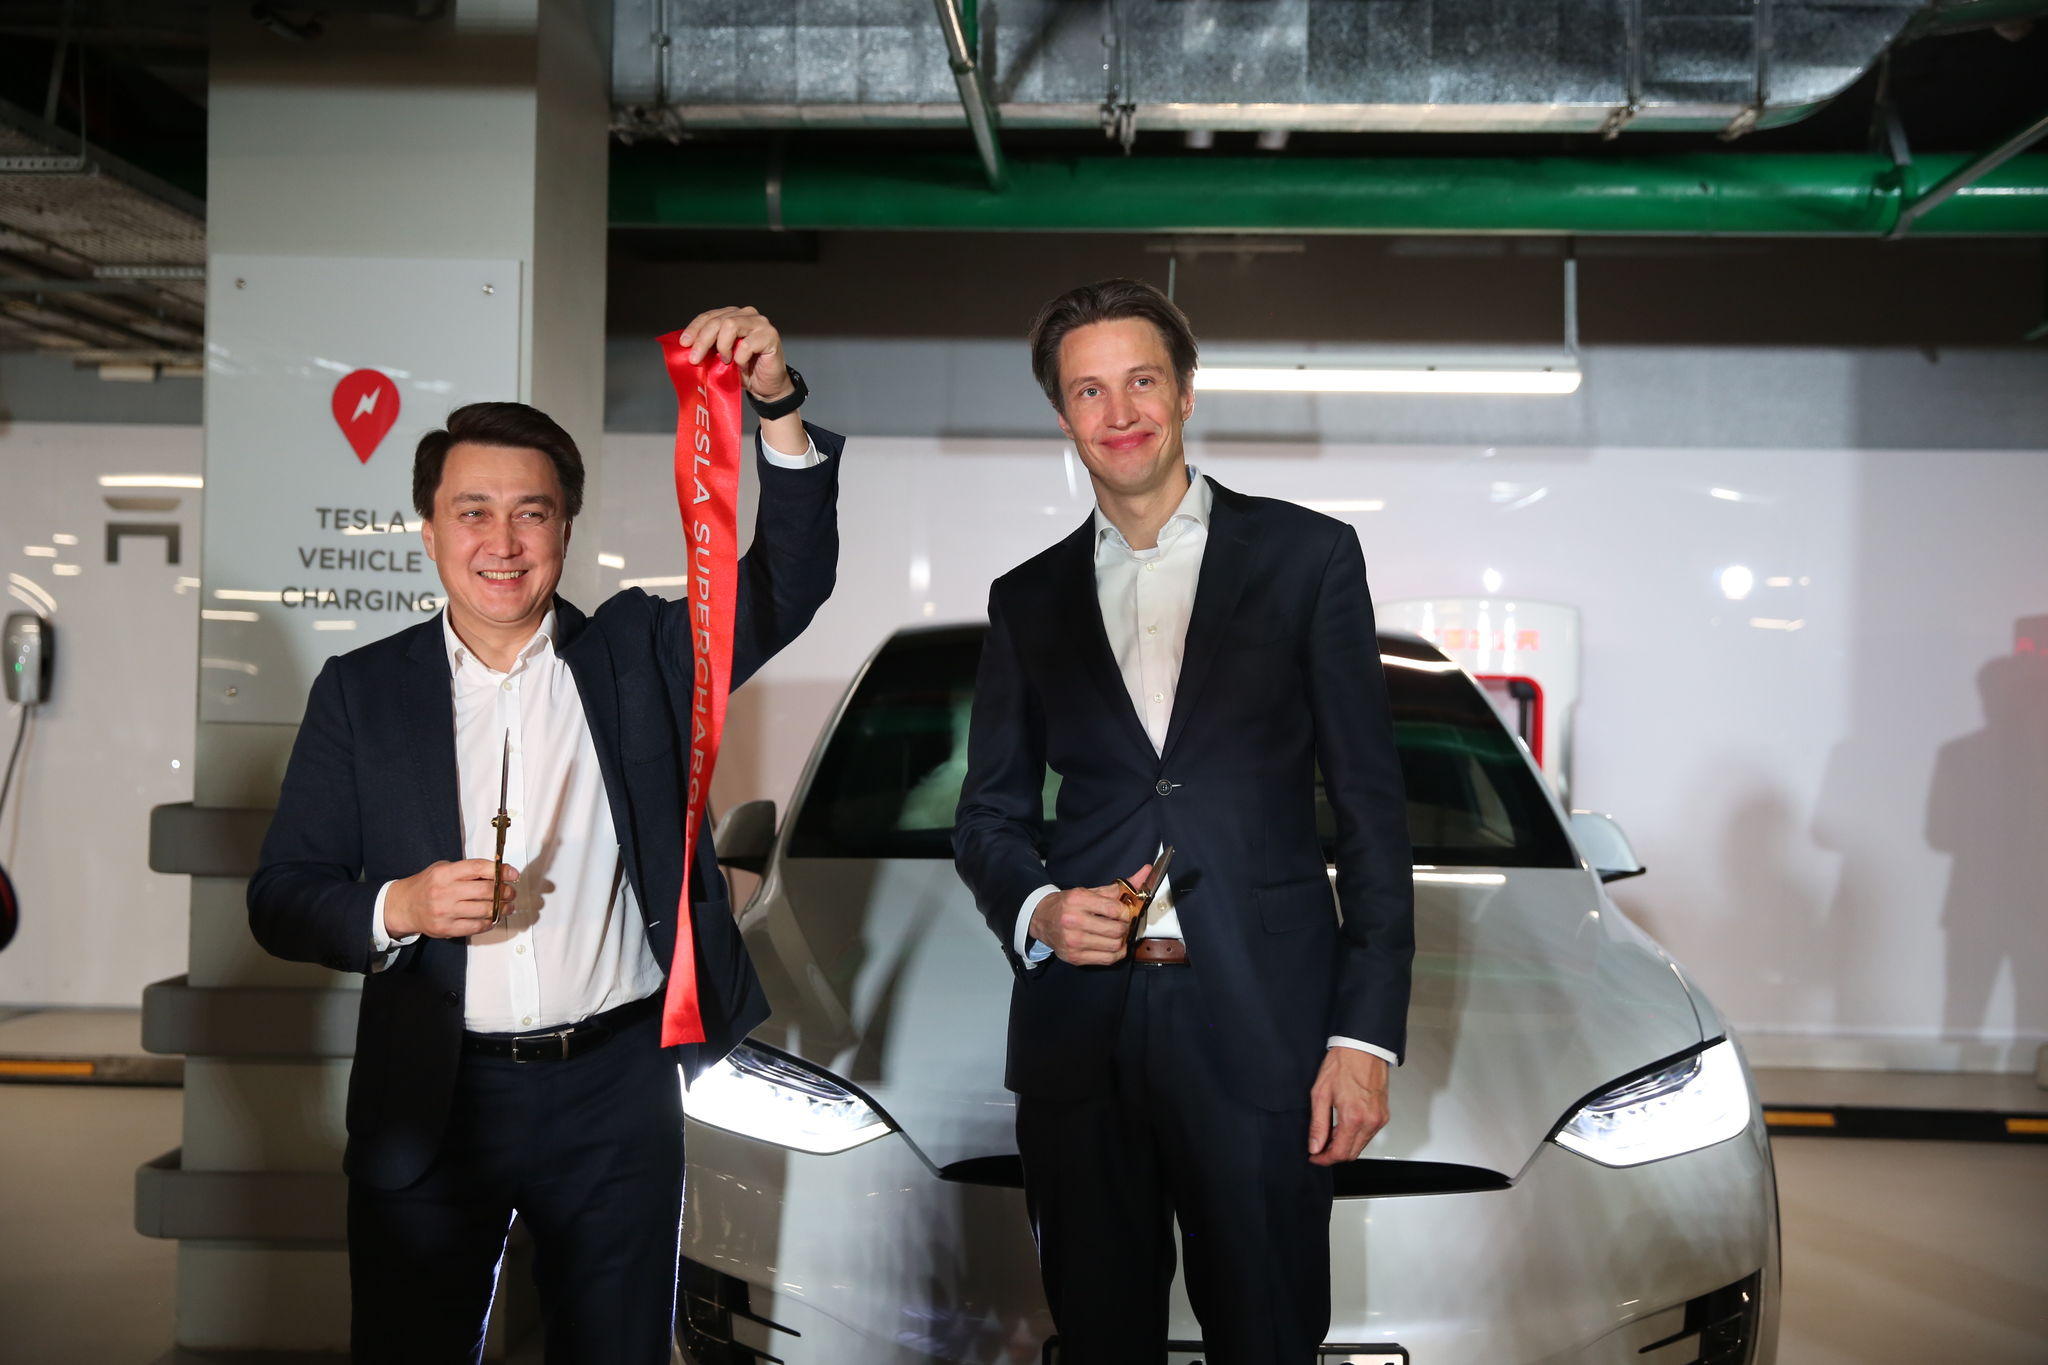 The first Tesla Supercharger stations in the CIS region opened in Talan Towers